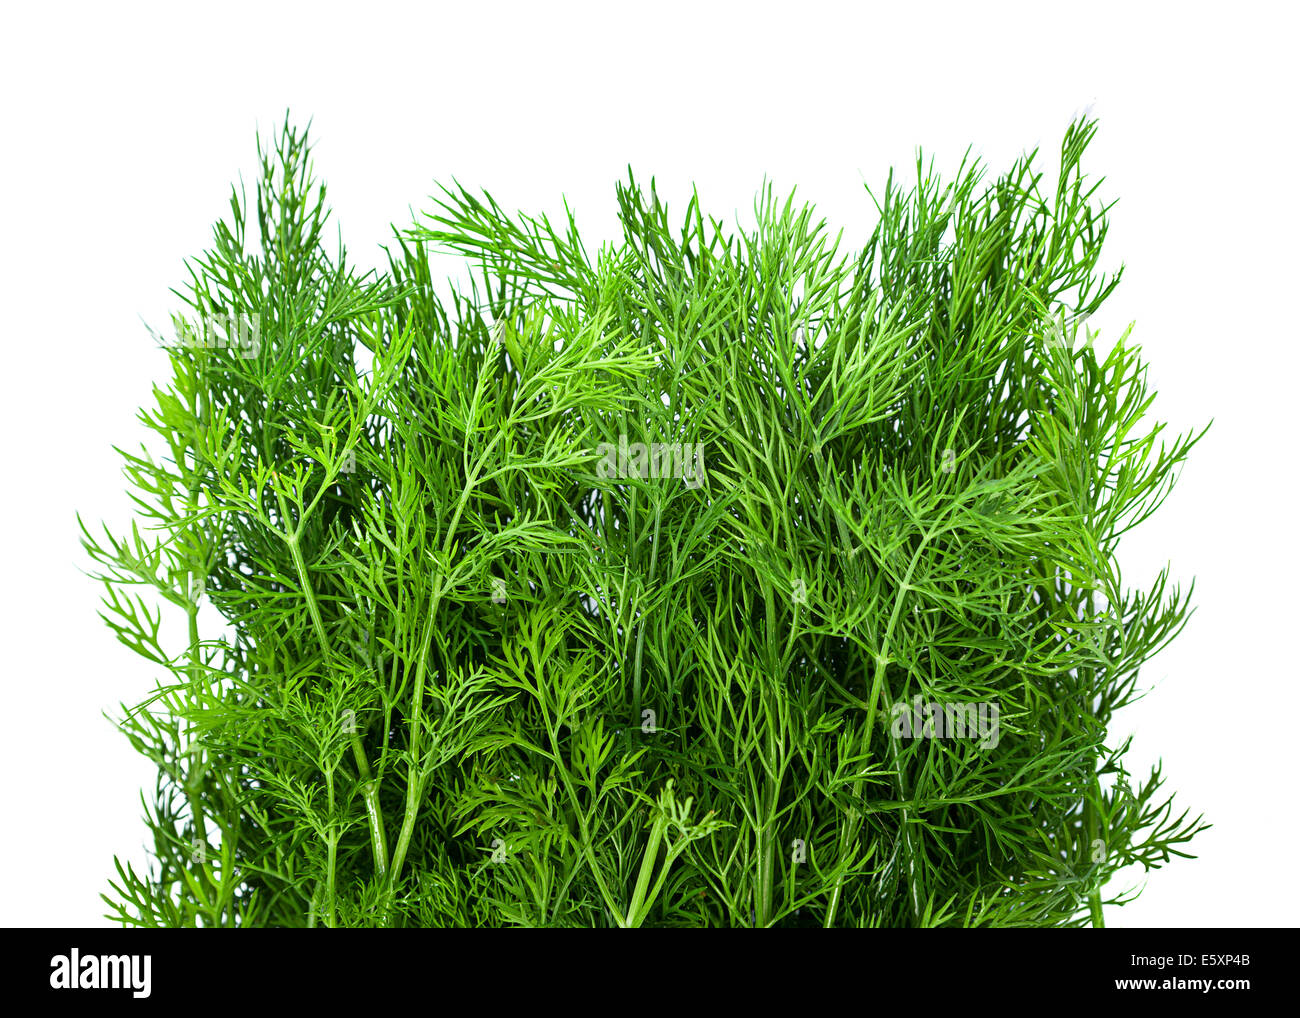 Dill herb closeup isolated on white background - Stock Image